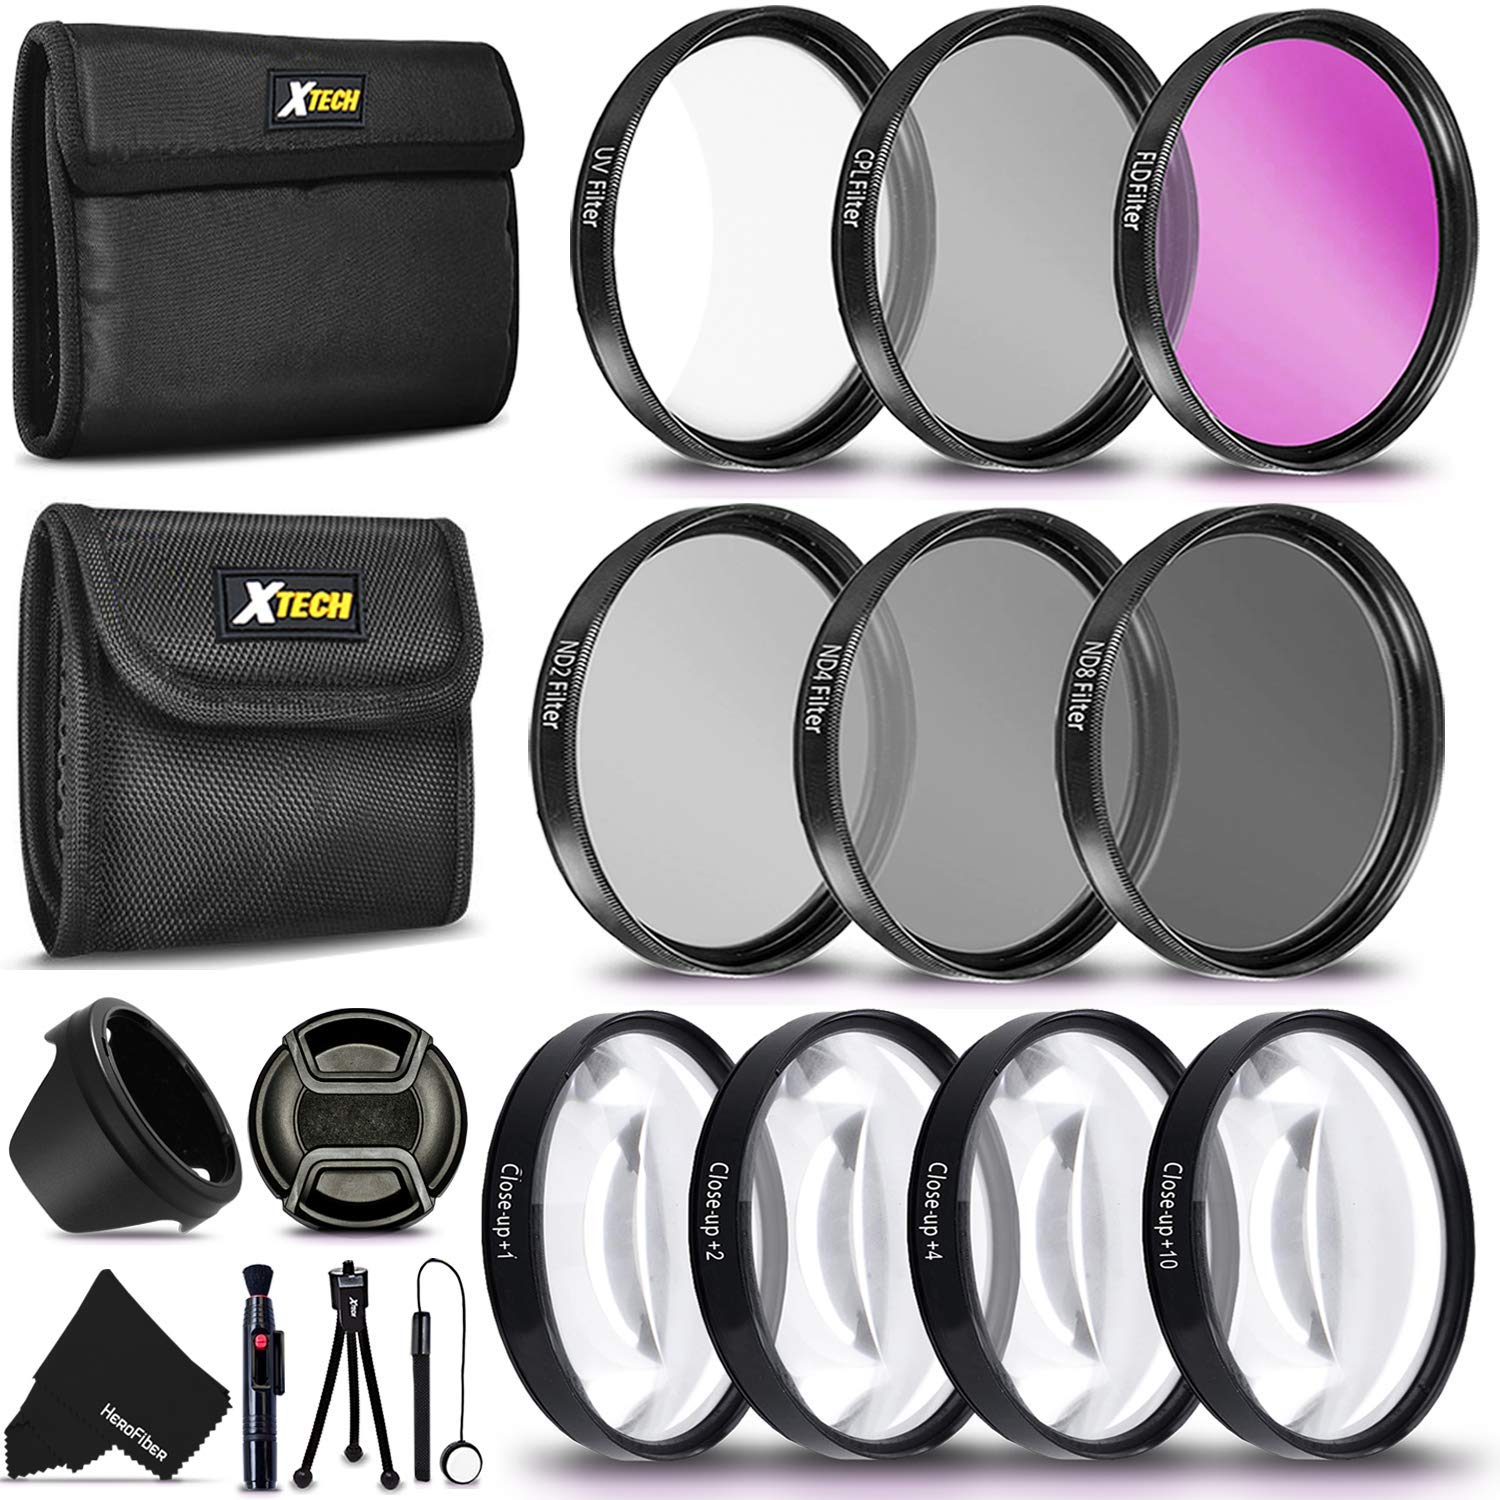 Professional 58mm Wide Angle /& 2X Telephoto Lens Attachments Kit for Canon EOS Rebel T7 T7i T6i T6s T6 T5 T5i T3i SL2 SL3 EOS 70D 77D 80D DSLR Cameras Accessories